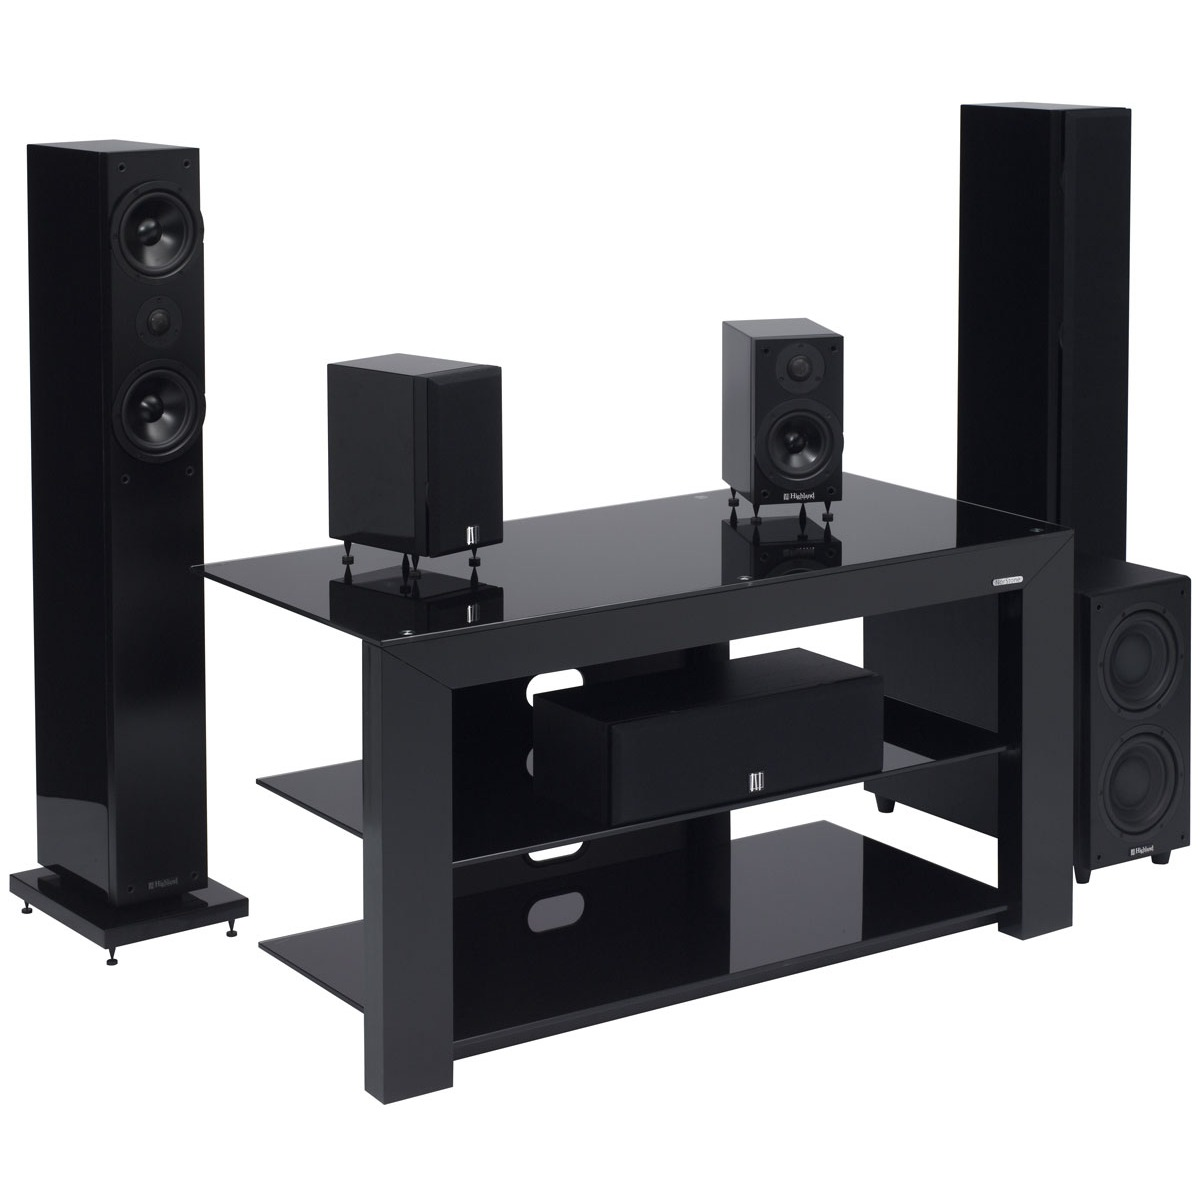 Norstone Pi Av Meuble Tv Norstone Sur Ldlc Com # Meuble Tv Audio Video